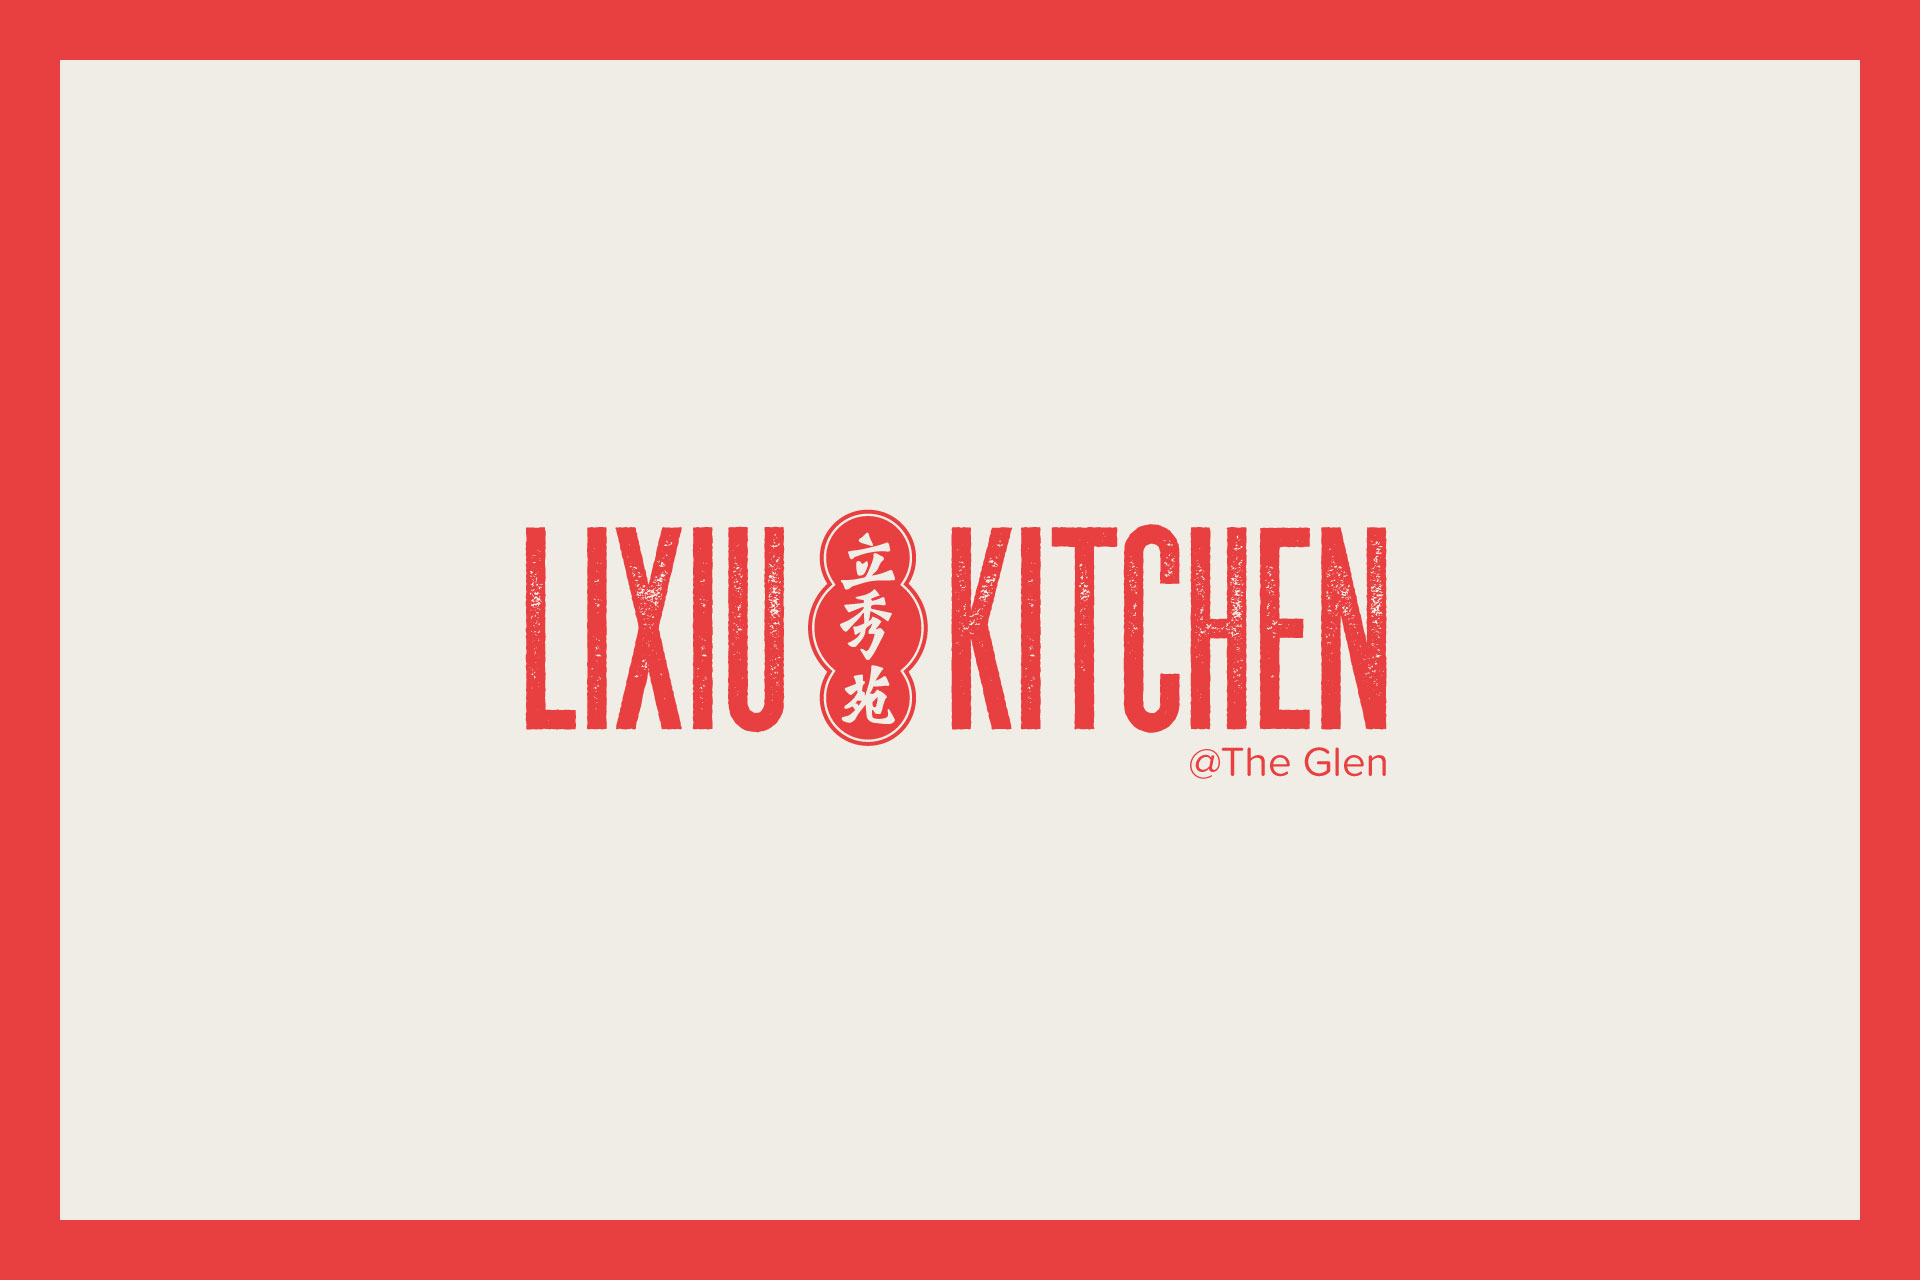 Li Xiu Kitchen branding by Z Creative Studio Branding & Graphic Design Melbourne